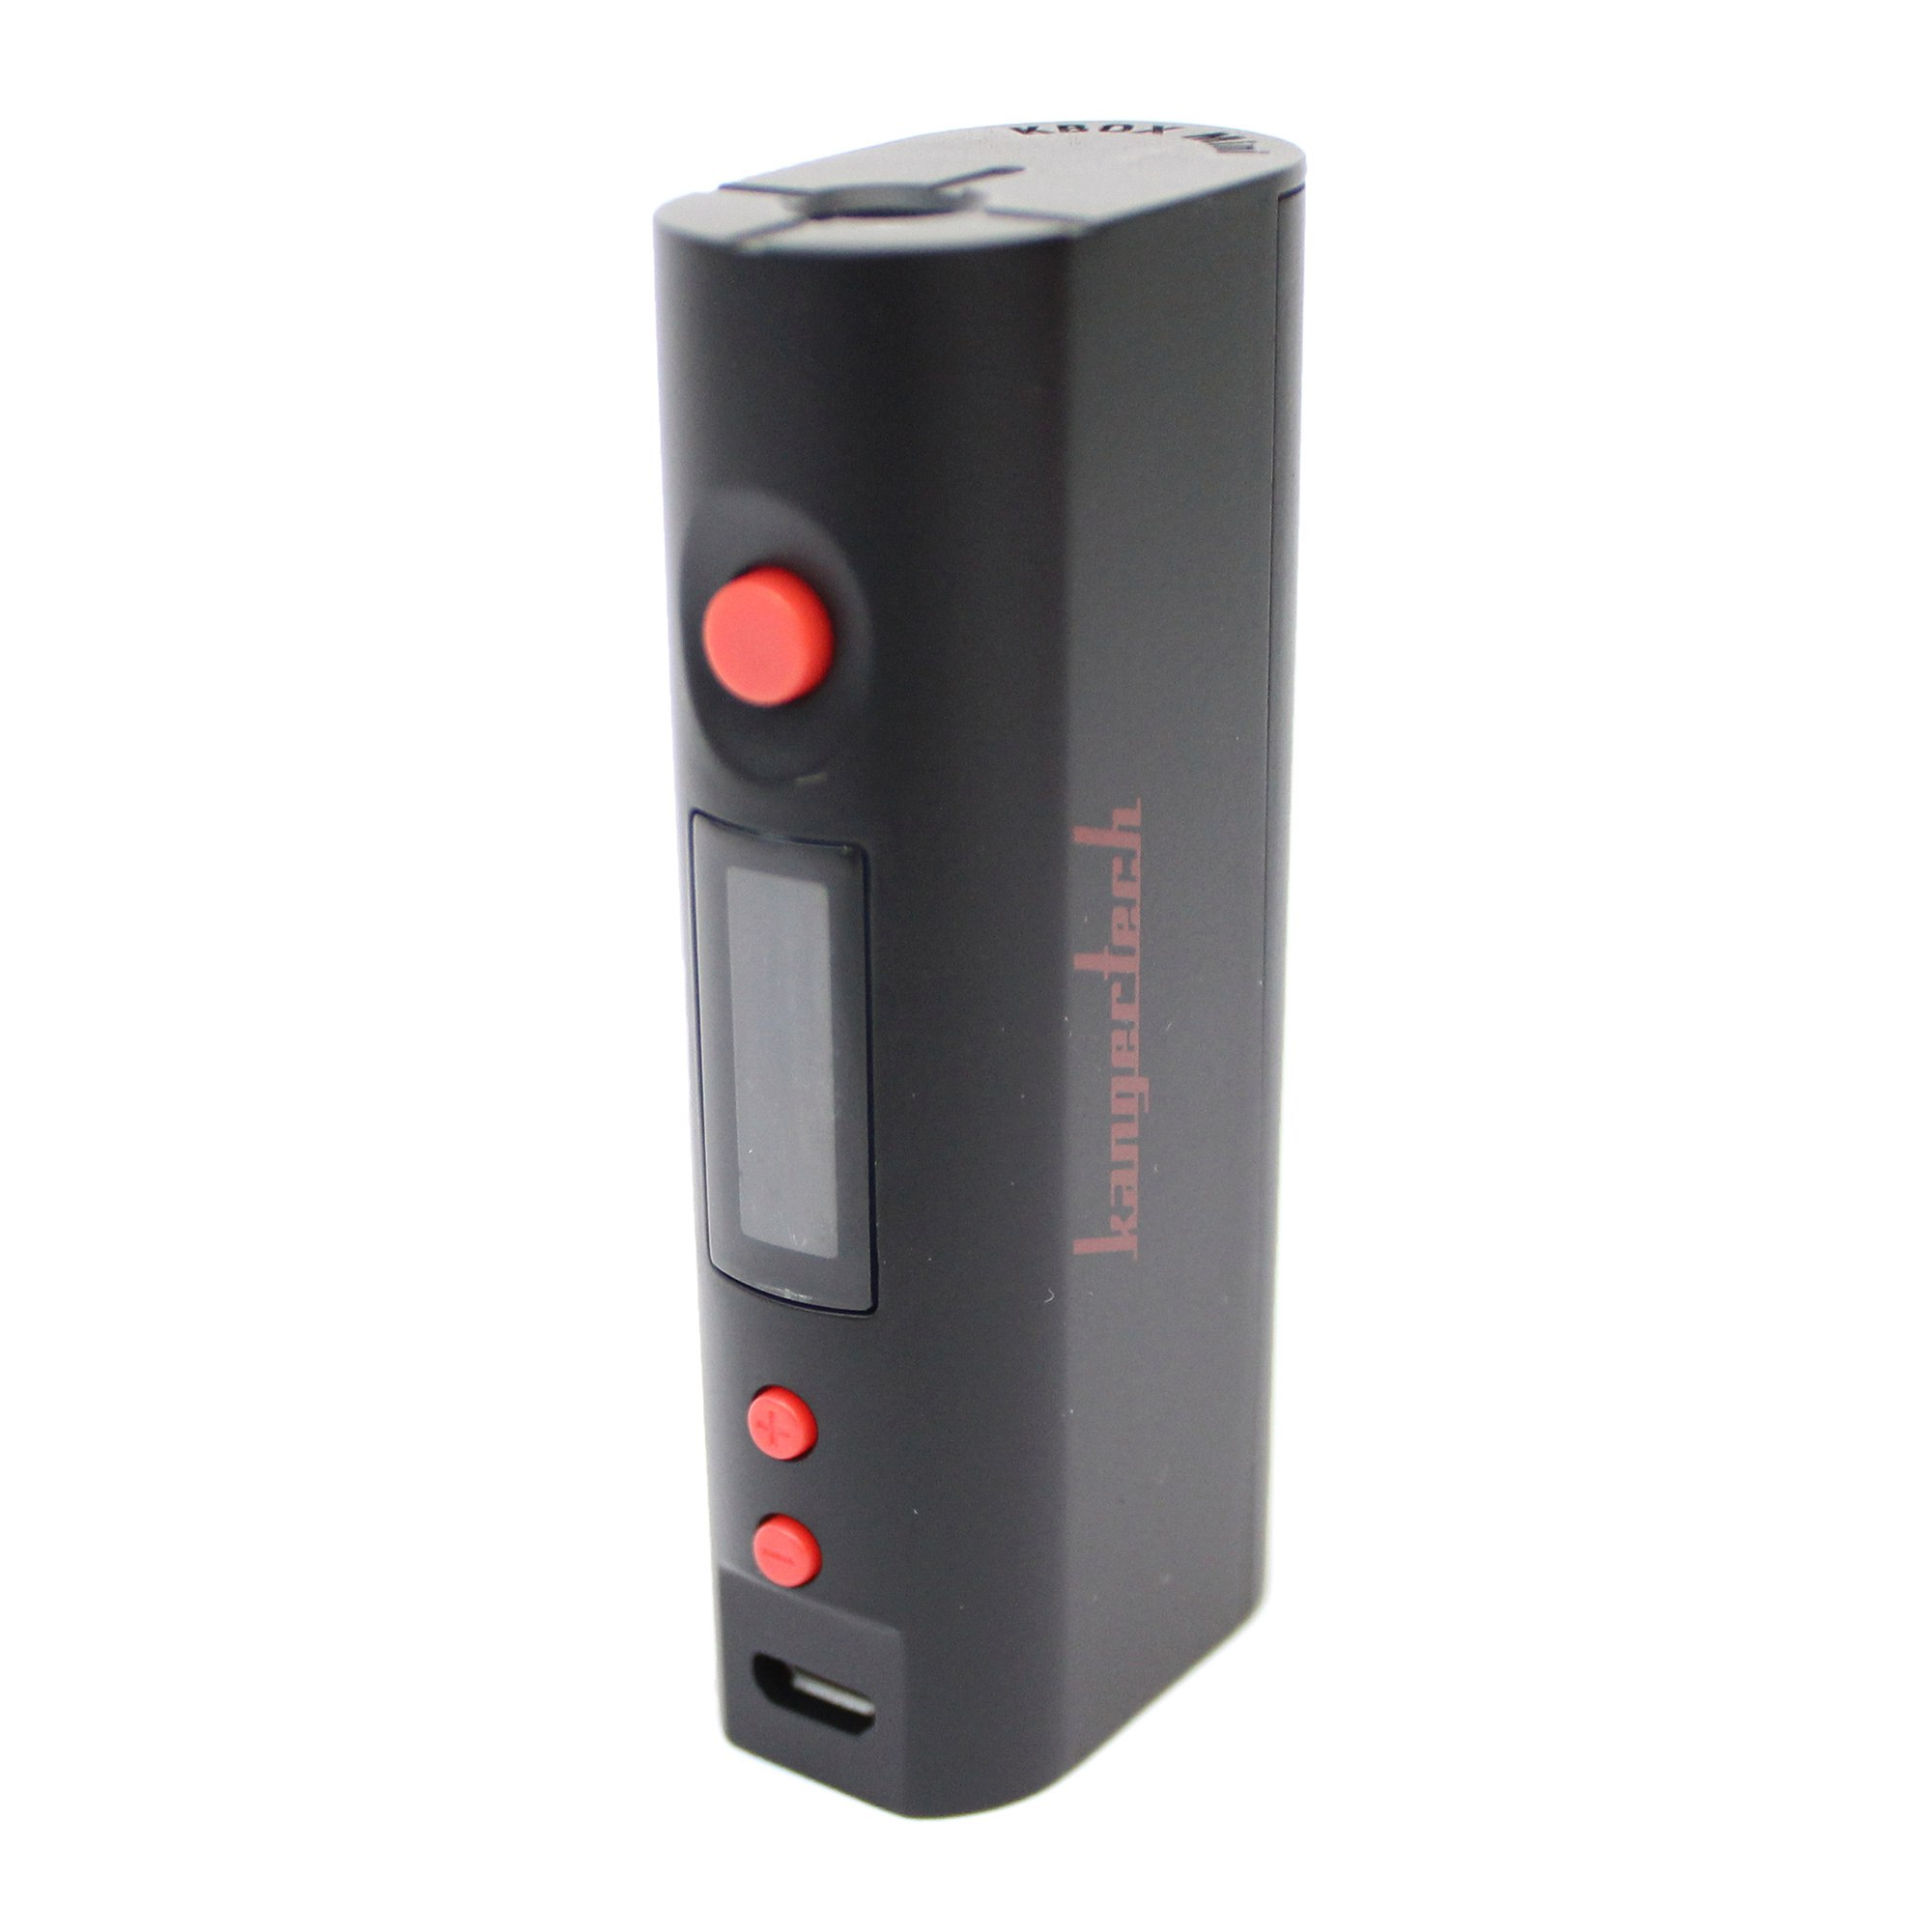 kanger top box mini 75w